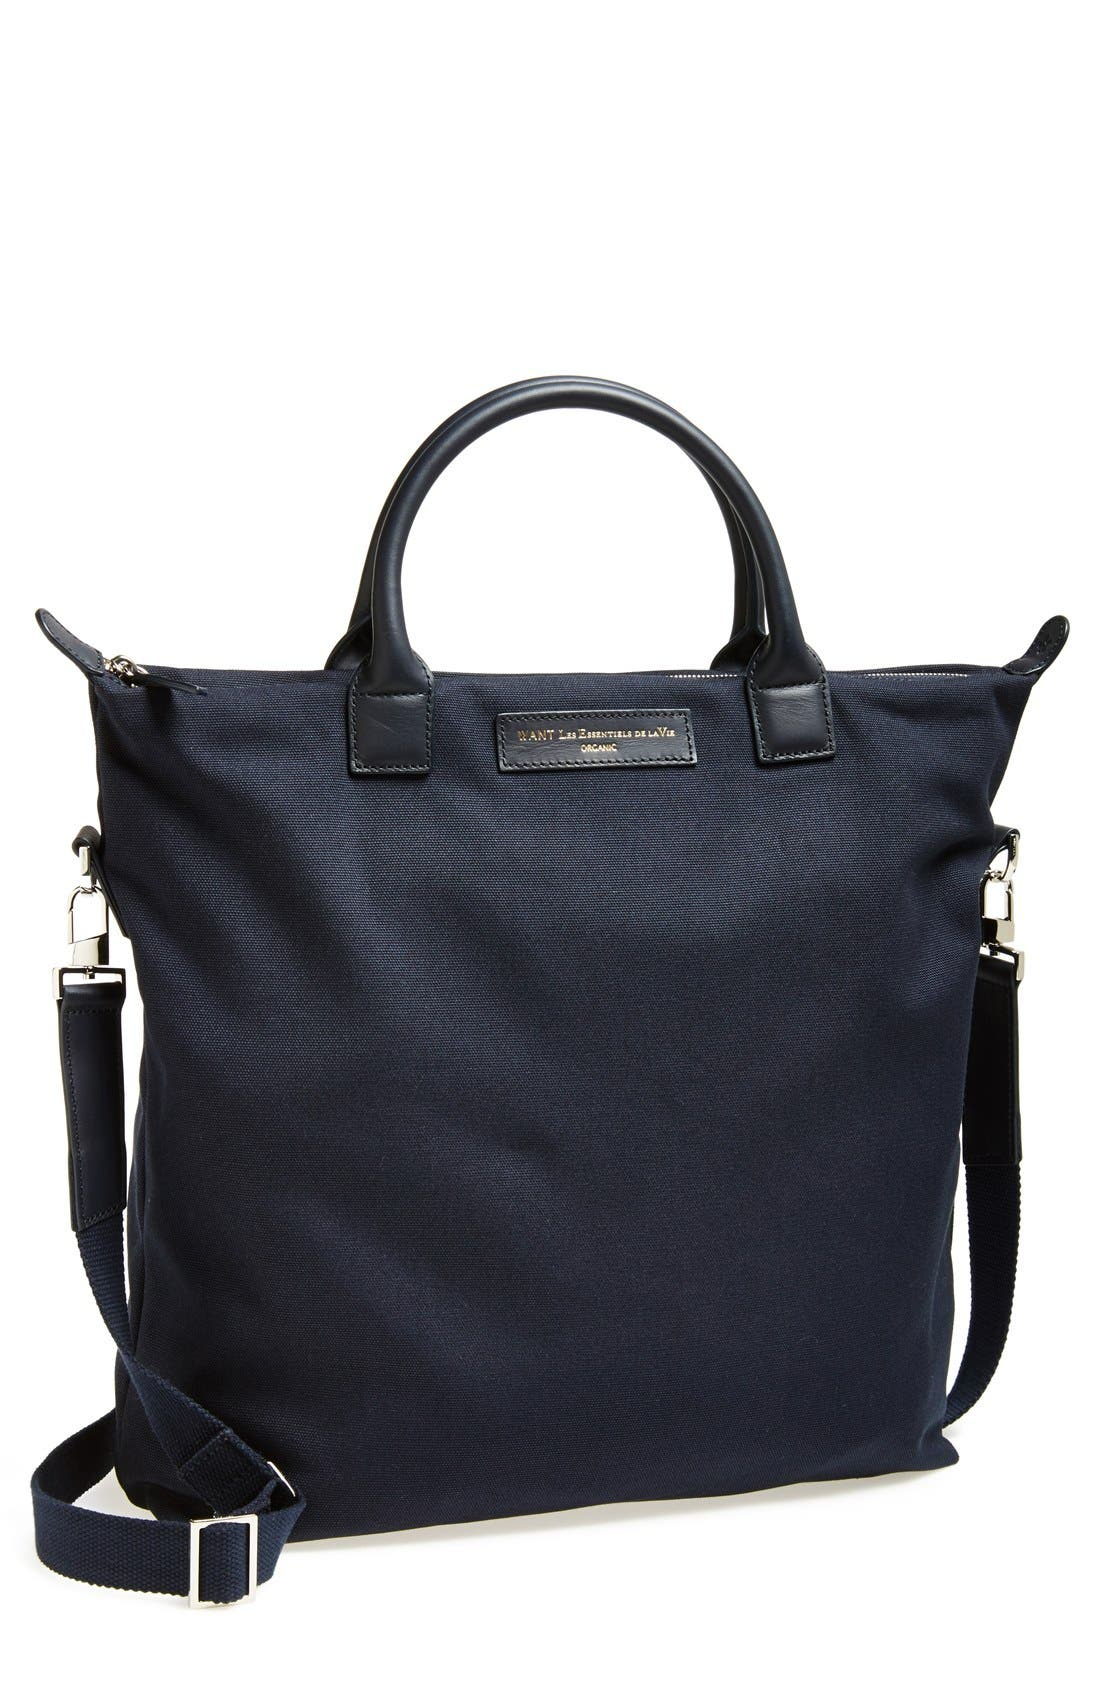 WANT LES ESSENTIELS 'O'Hare' Tote Bag